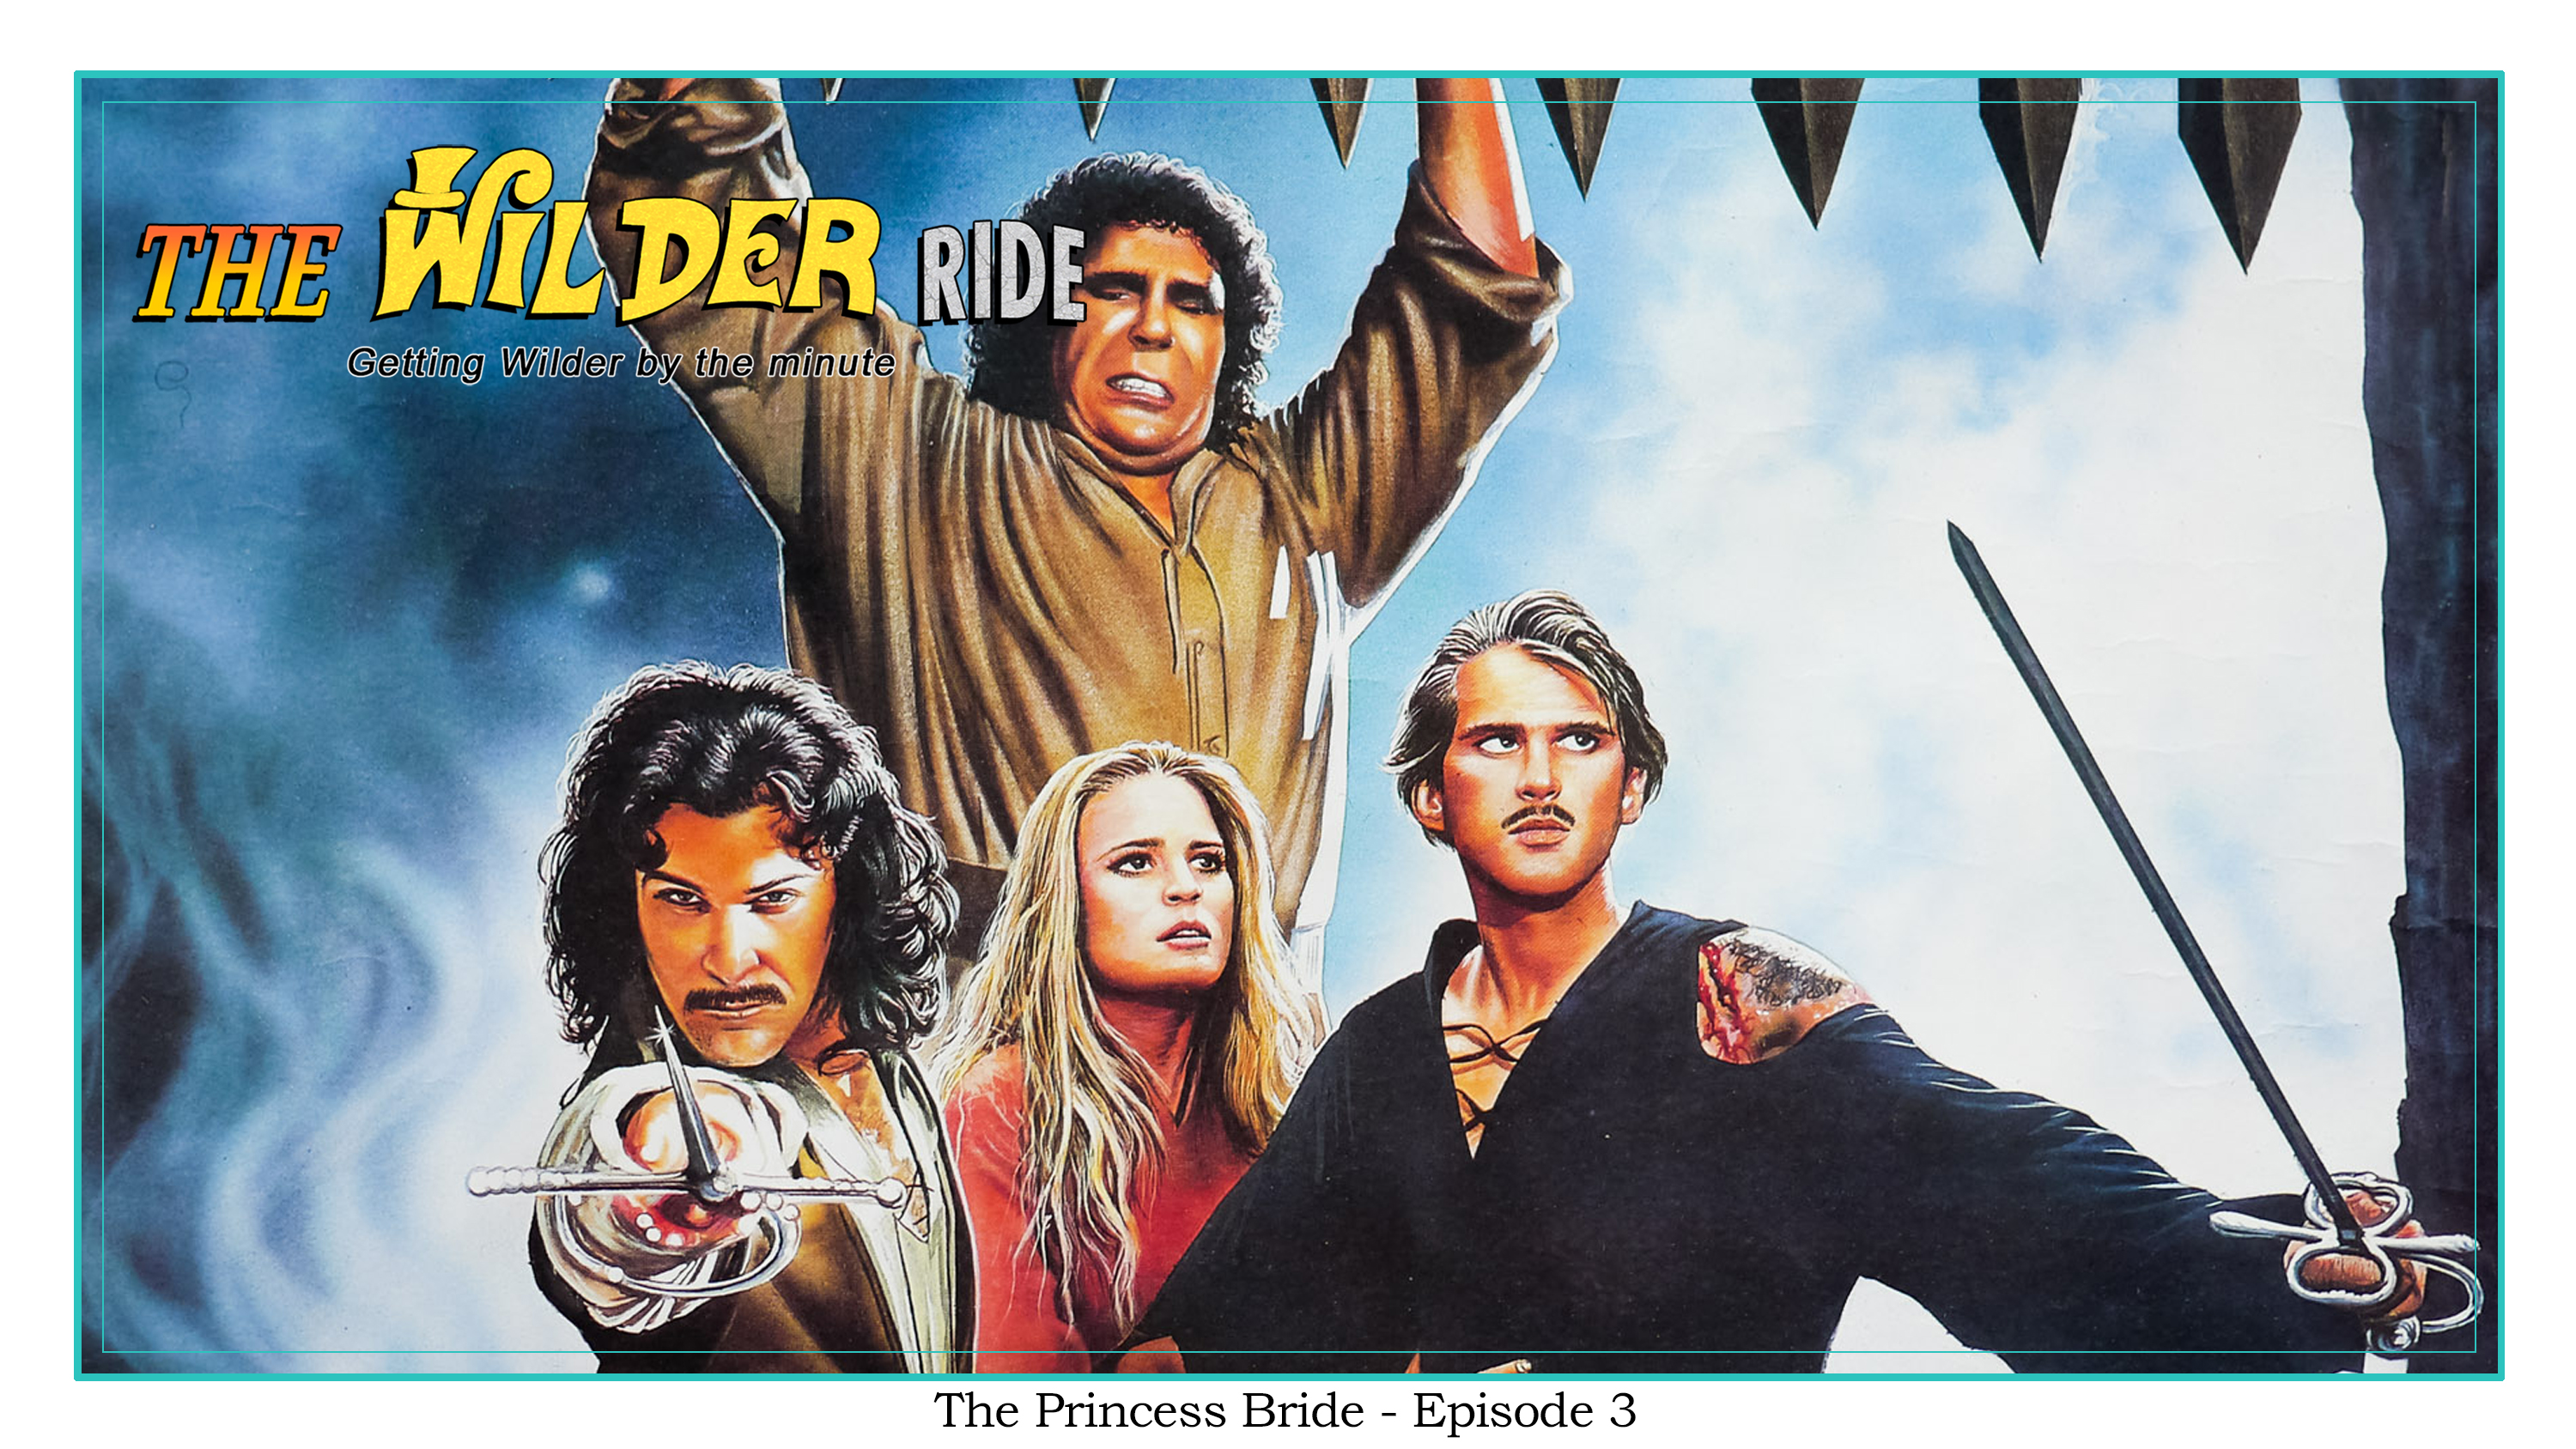 The Princess Bride - Episode 3